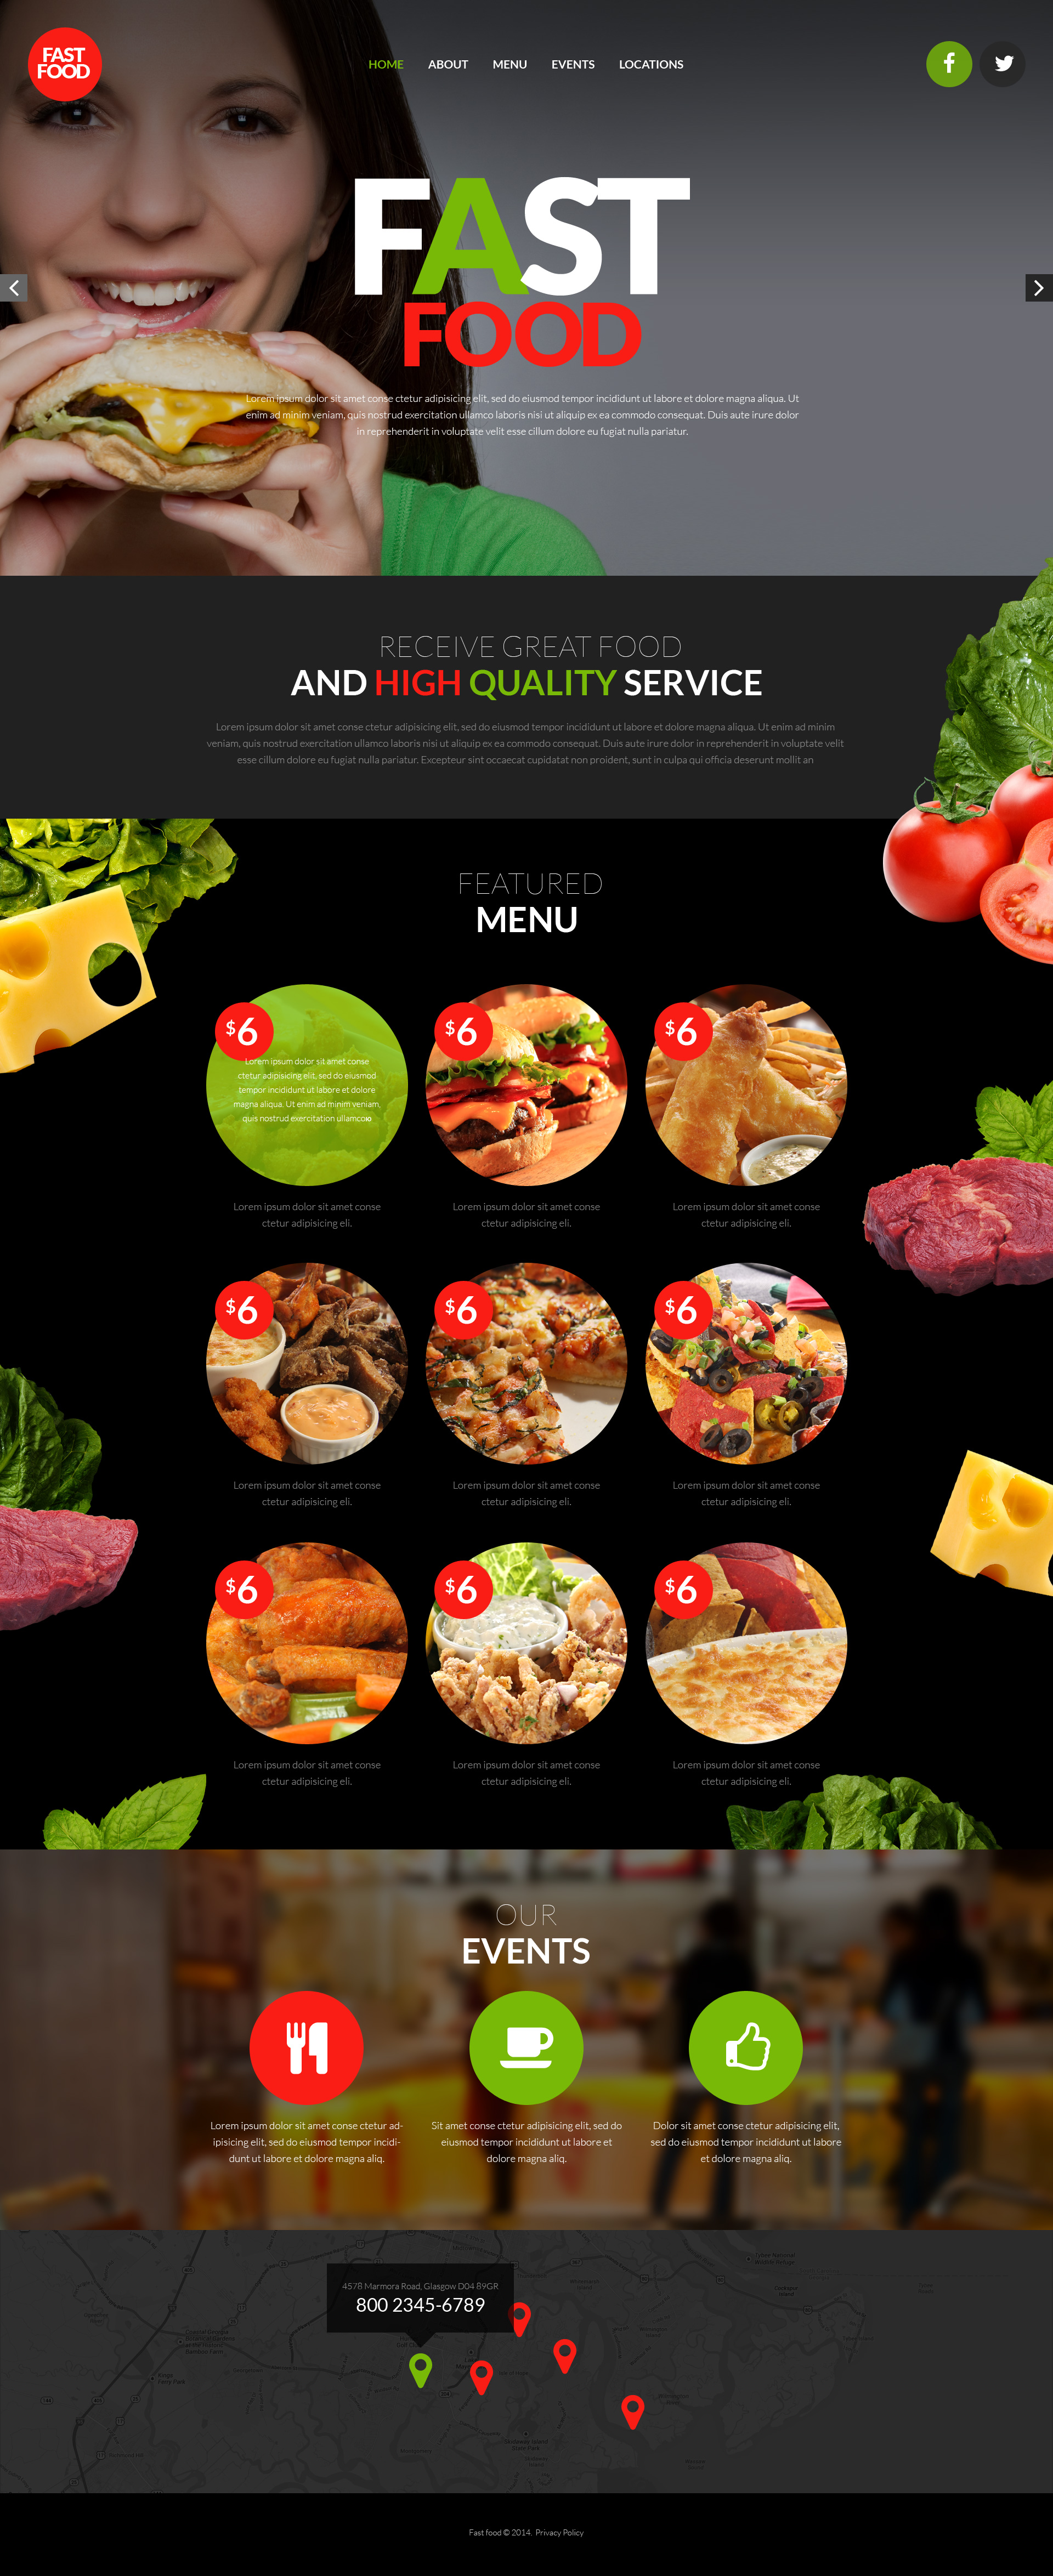 The Fast Food Responsive Javascript Animated Design 53532, one of the best website templates of its kind (cafe and restaurant, most popular), also known as fast food website template, small cafe website template, meal website template, cuisine website template, drink website template, menu website template, dish website template, wine website template, taste website template, tasty website template, flavor website template, reservation website template, specials website template, recipe website template, launch website template, dinner website template, testimonials website template, offers website template, dietetic website template, kitchen website template, cookbook website template, vegetarian website template, cocktail website template, special cancellation website template, gifts website template, bonuses website template, discount website template, patrons website template, reservation website template, delivery and related with fast food, small cafe, meal, cuisine, drink, menu, dish, wine, taste, tasty, flavor, reservation, specials, recipe, launch, dinner, testimonials, offers, dietetic, kitchen, cookbook, vegetarian, cocktail, special cancellation, gifts, bonuses, discount, patrons, reservation, delivery, etc.